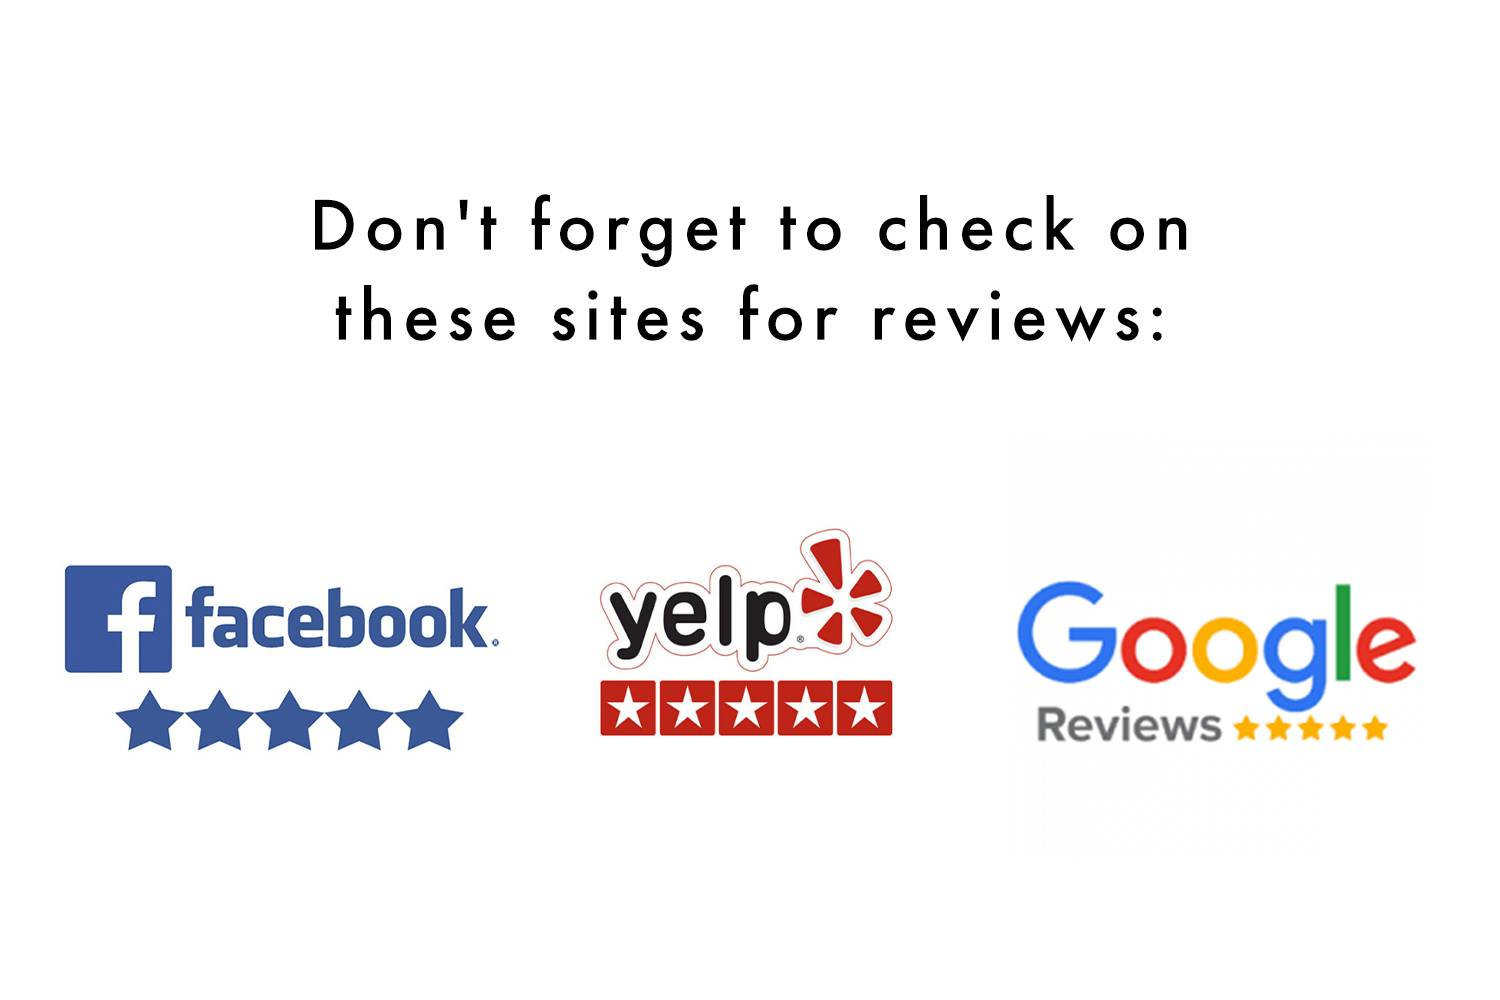 """Image saying """"don't forget to check on these sites for reviews"""" with icons for Facebook, Yelp and Google Reviews"""